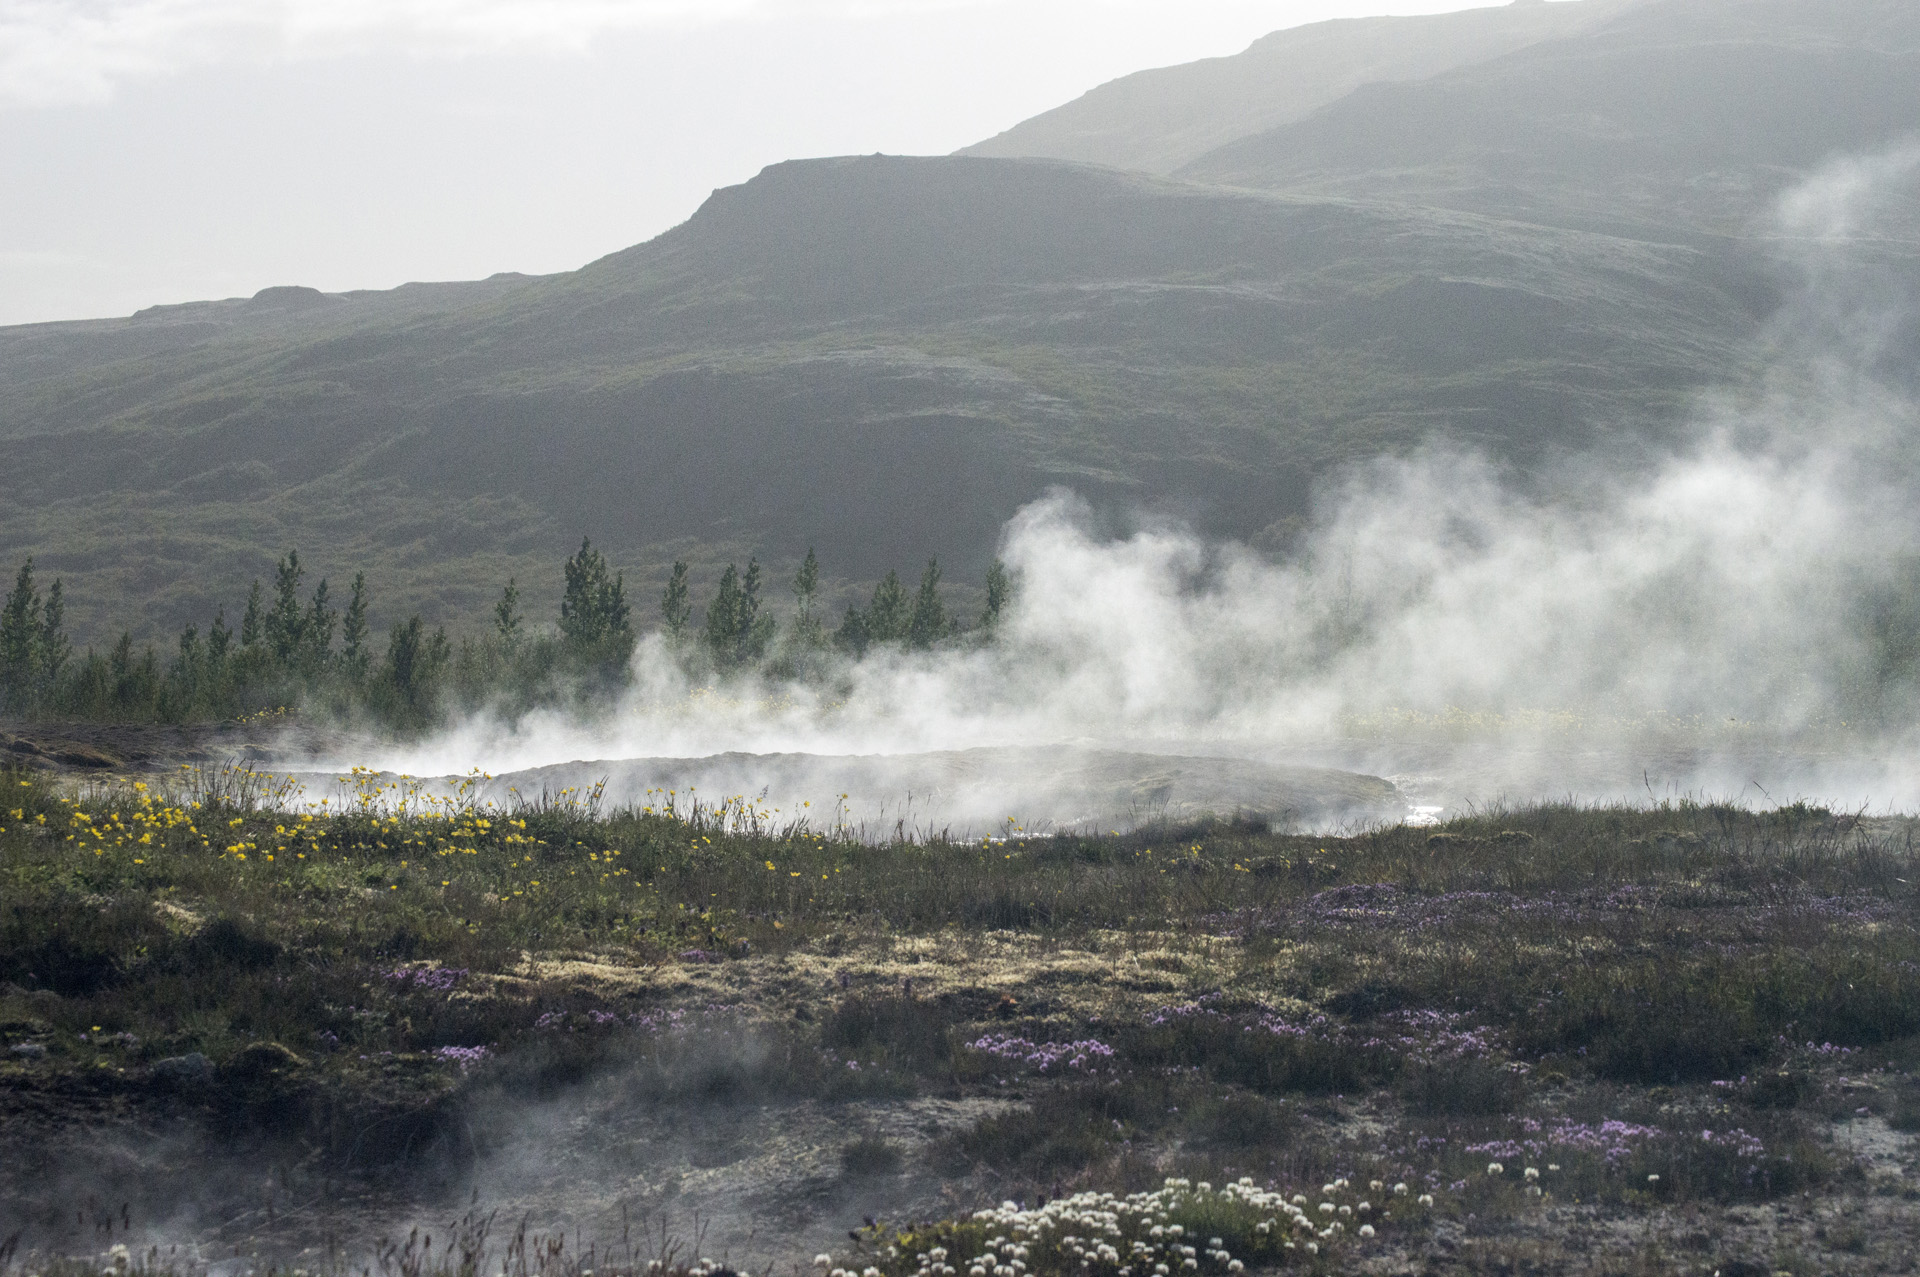 Steam rises from small geothermal pools in the Geysir Hot Spring Area in the Haukadalur Valley, Iceland.